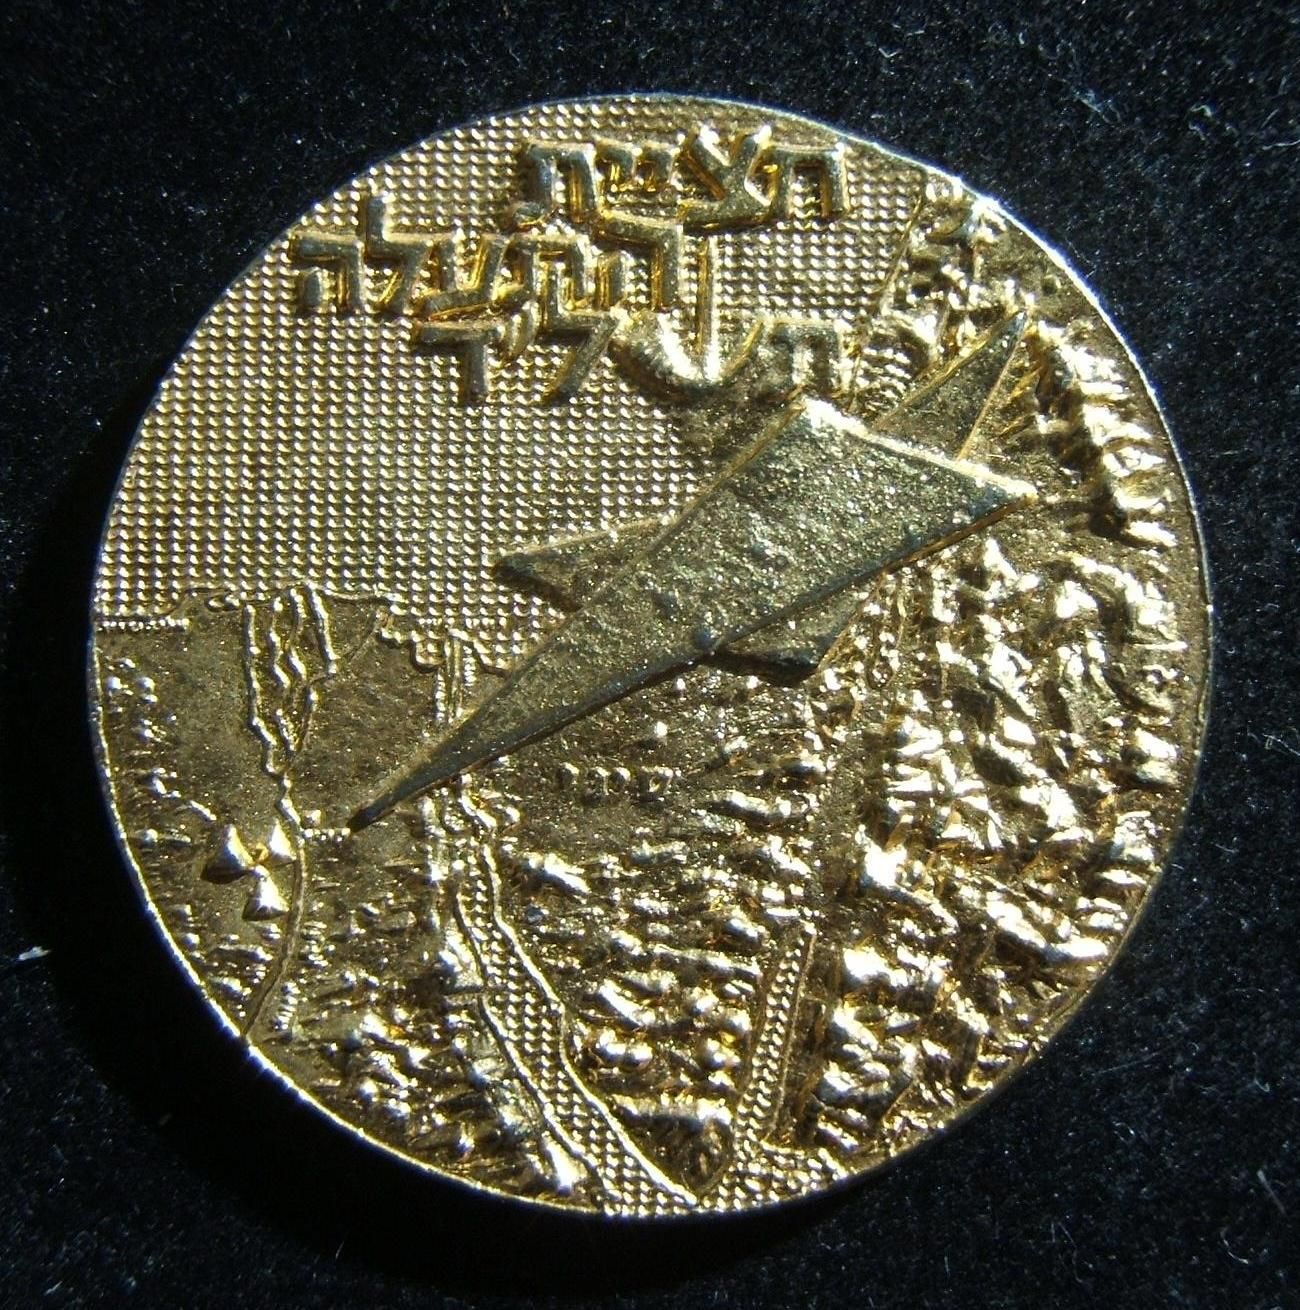 Israel: uniface medal commemorating the crossing of the Suez Canal in Yom Kippur War ND, c. 1974; not maker-marked; gold color finished metal; size: 3.4cm; weight: 19.55g. Obv.: re